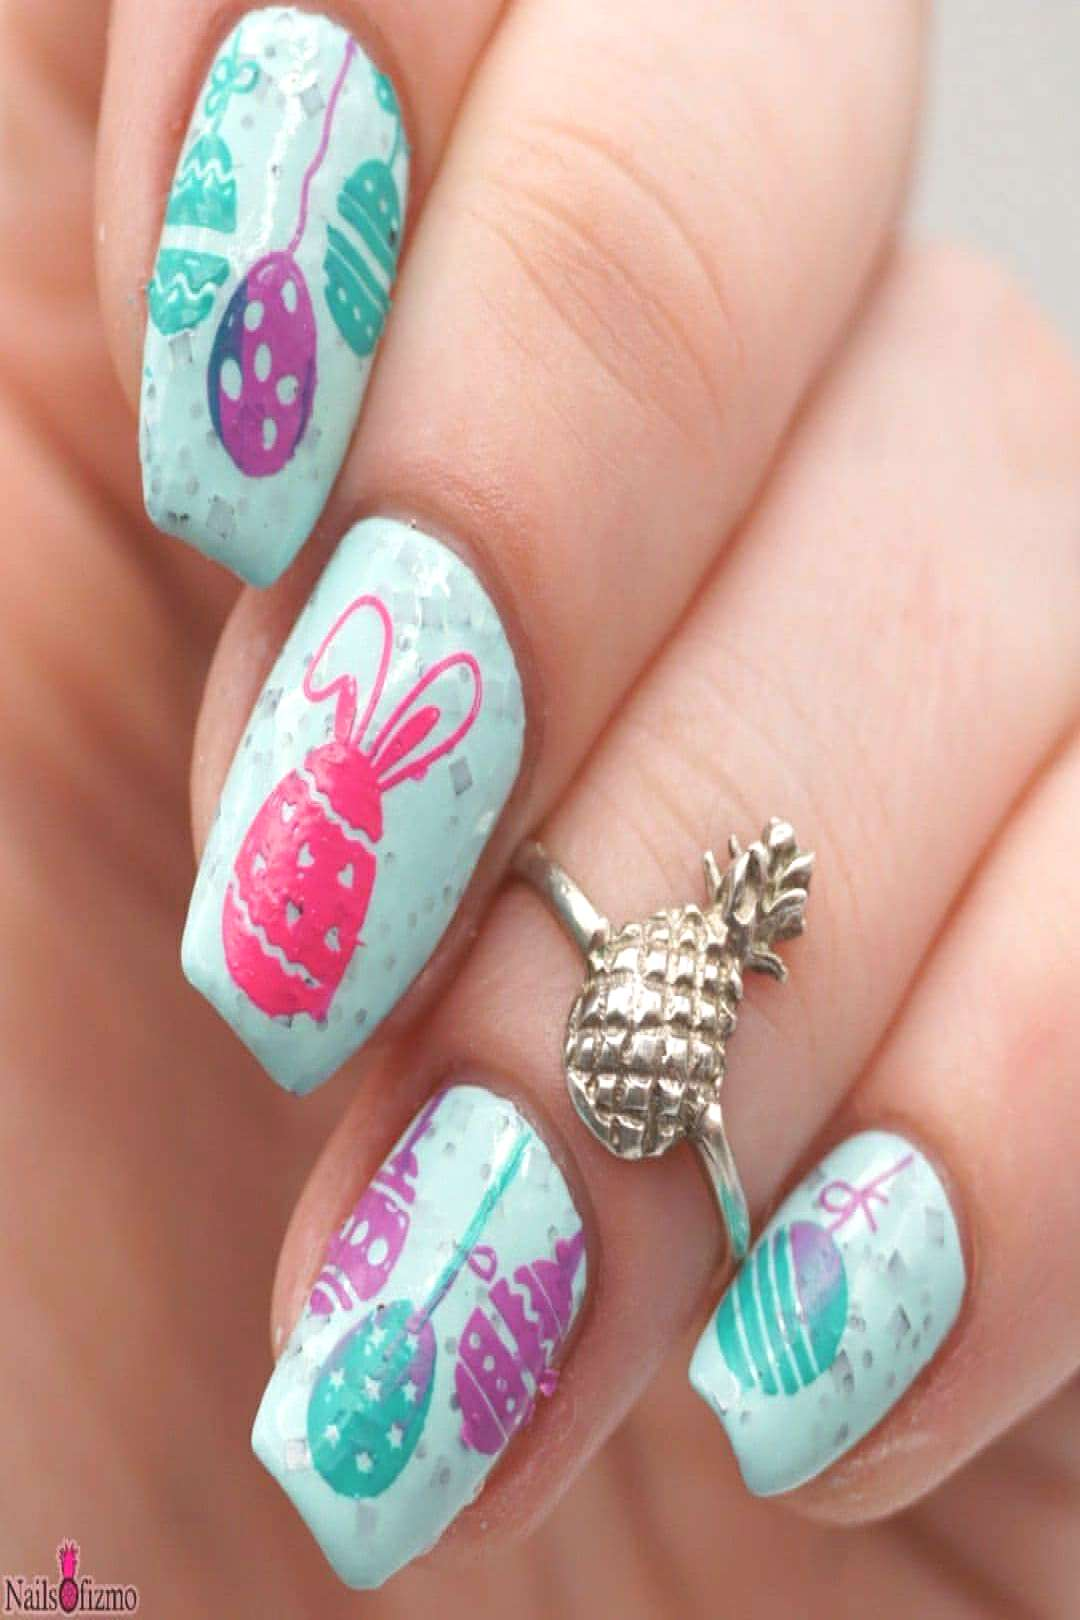 [#prsample] Rockin Robin nail art! How could I not stamp eggs on